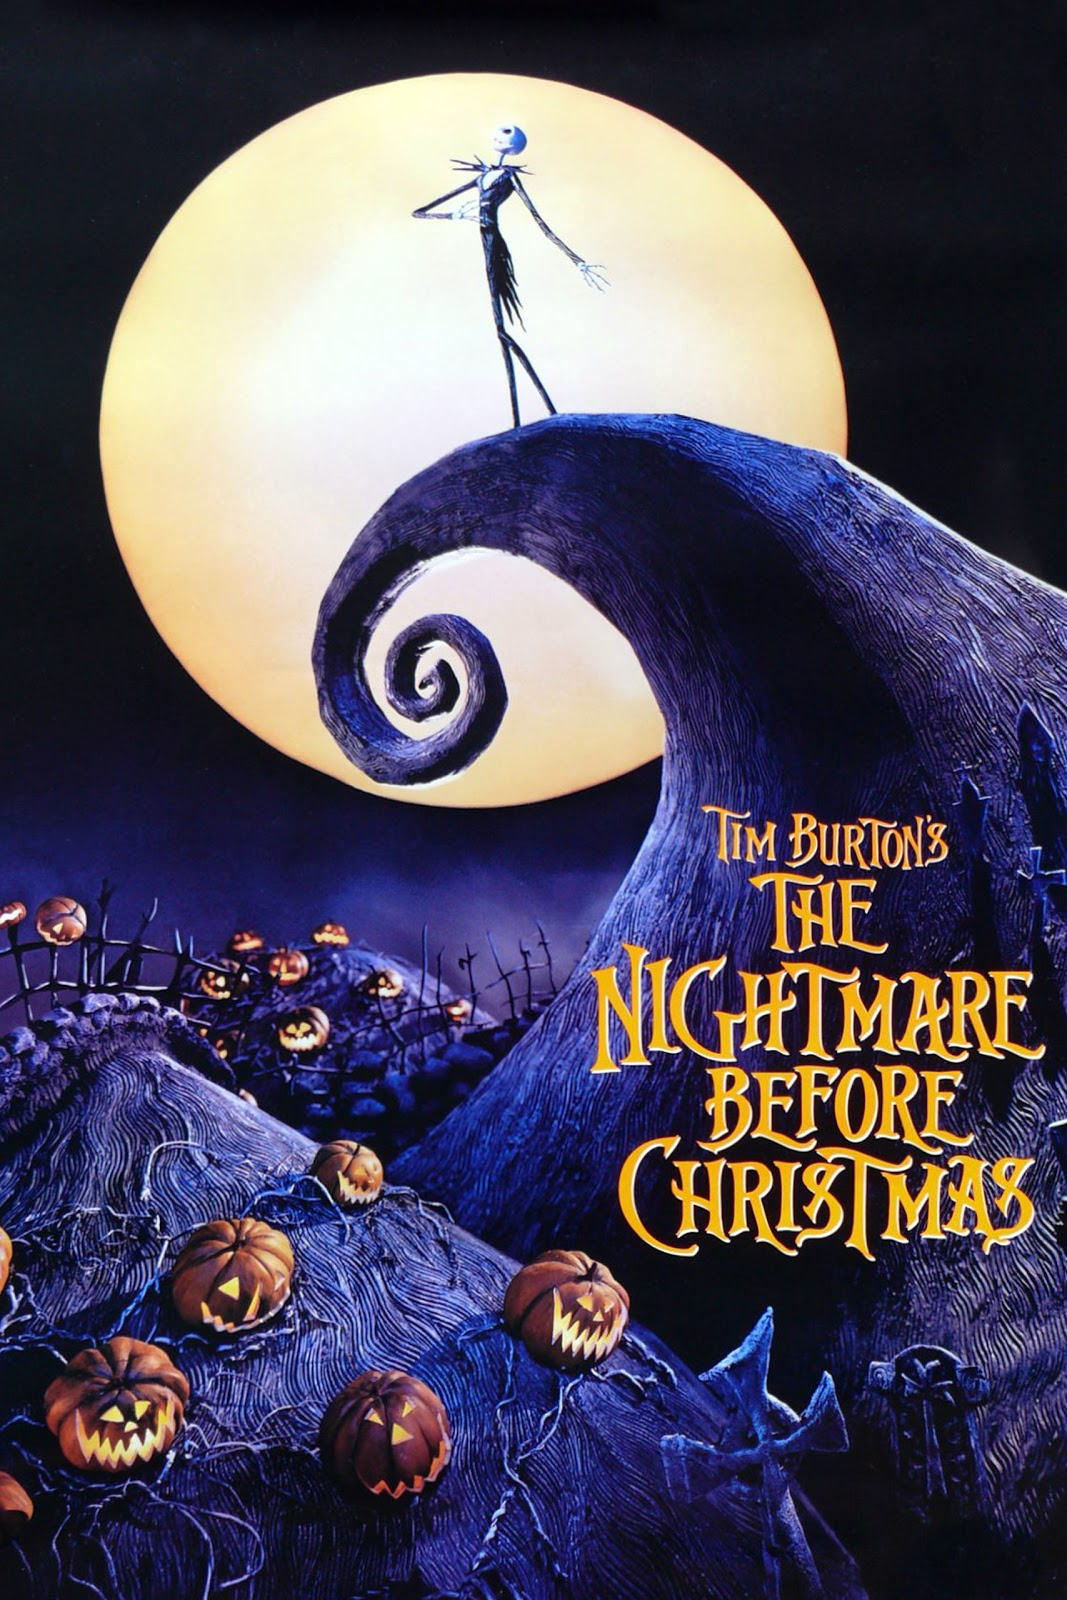 http://4.bp.blogspot.com/-IxmCETy9Q7c/TtS_YKhDk2I/AAAAAAAABtM/4wno4s6z3nA/s1600/The_Nightmare_Before_Christmas_iphone%20wallpaper_1.jpg